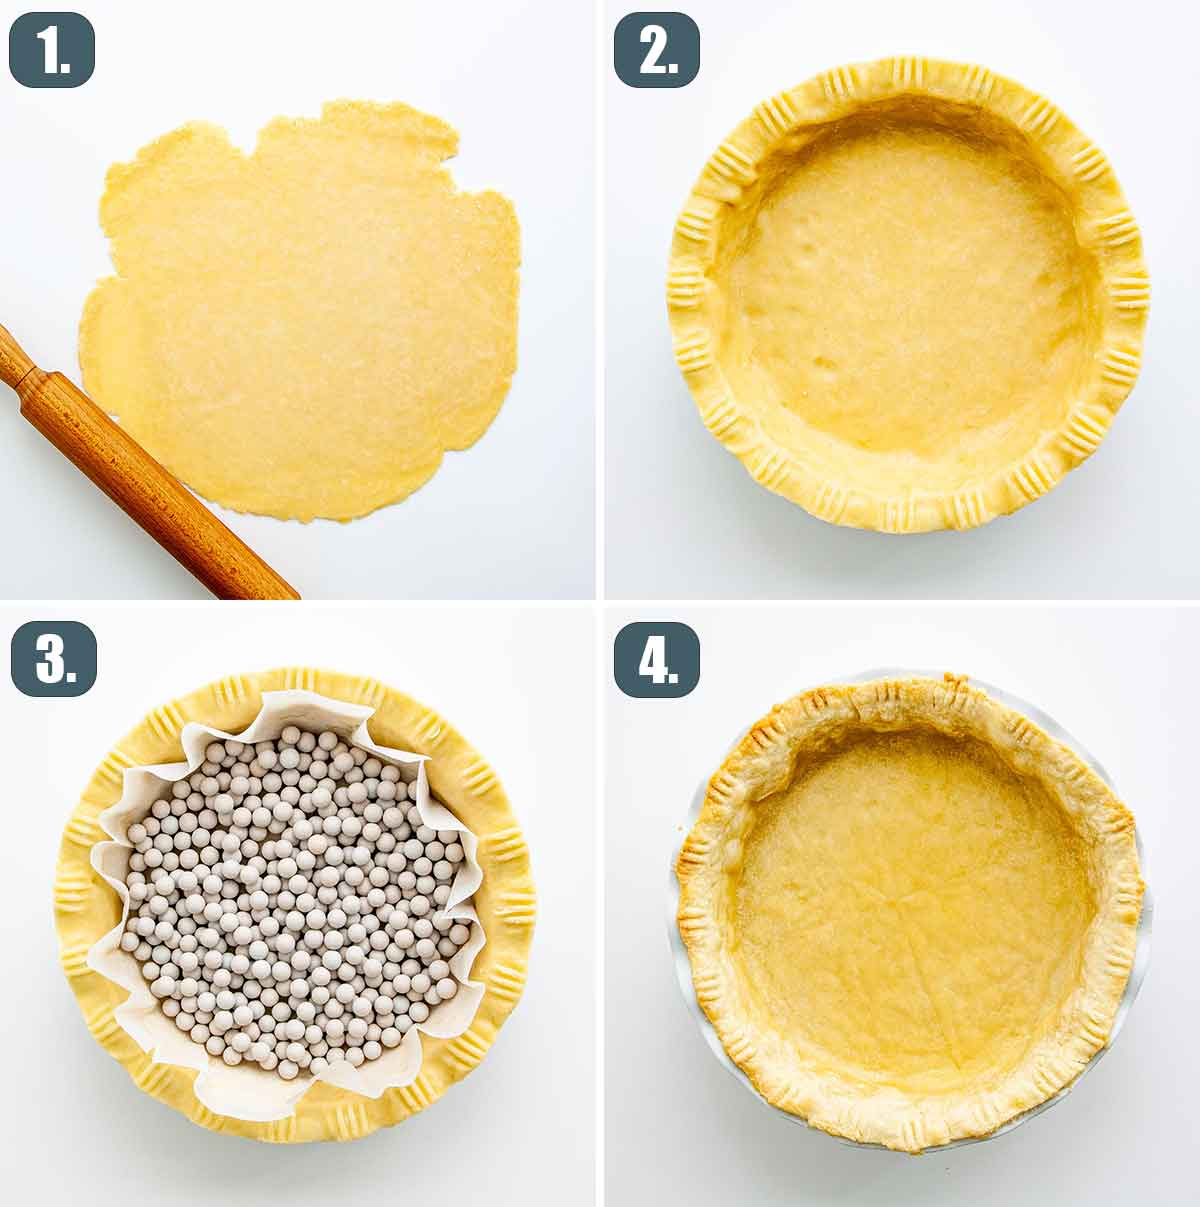 process shots showing how to prepare pie crust.